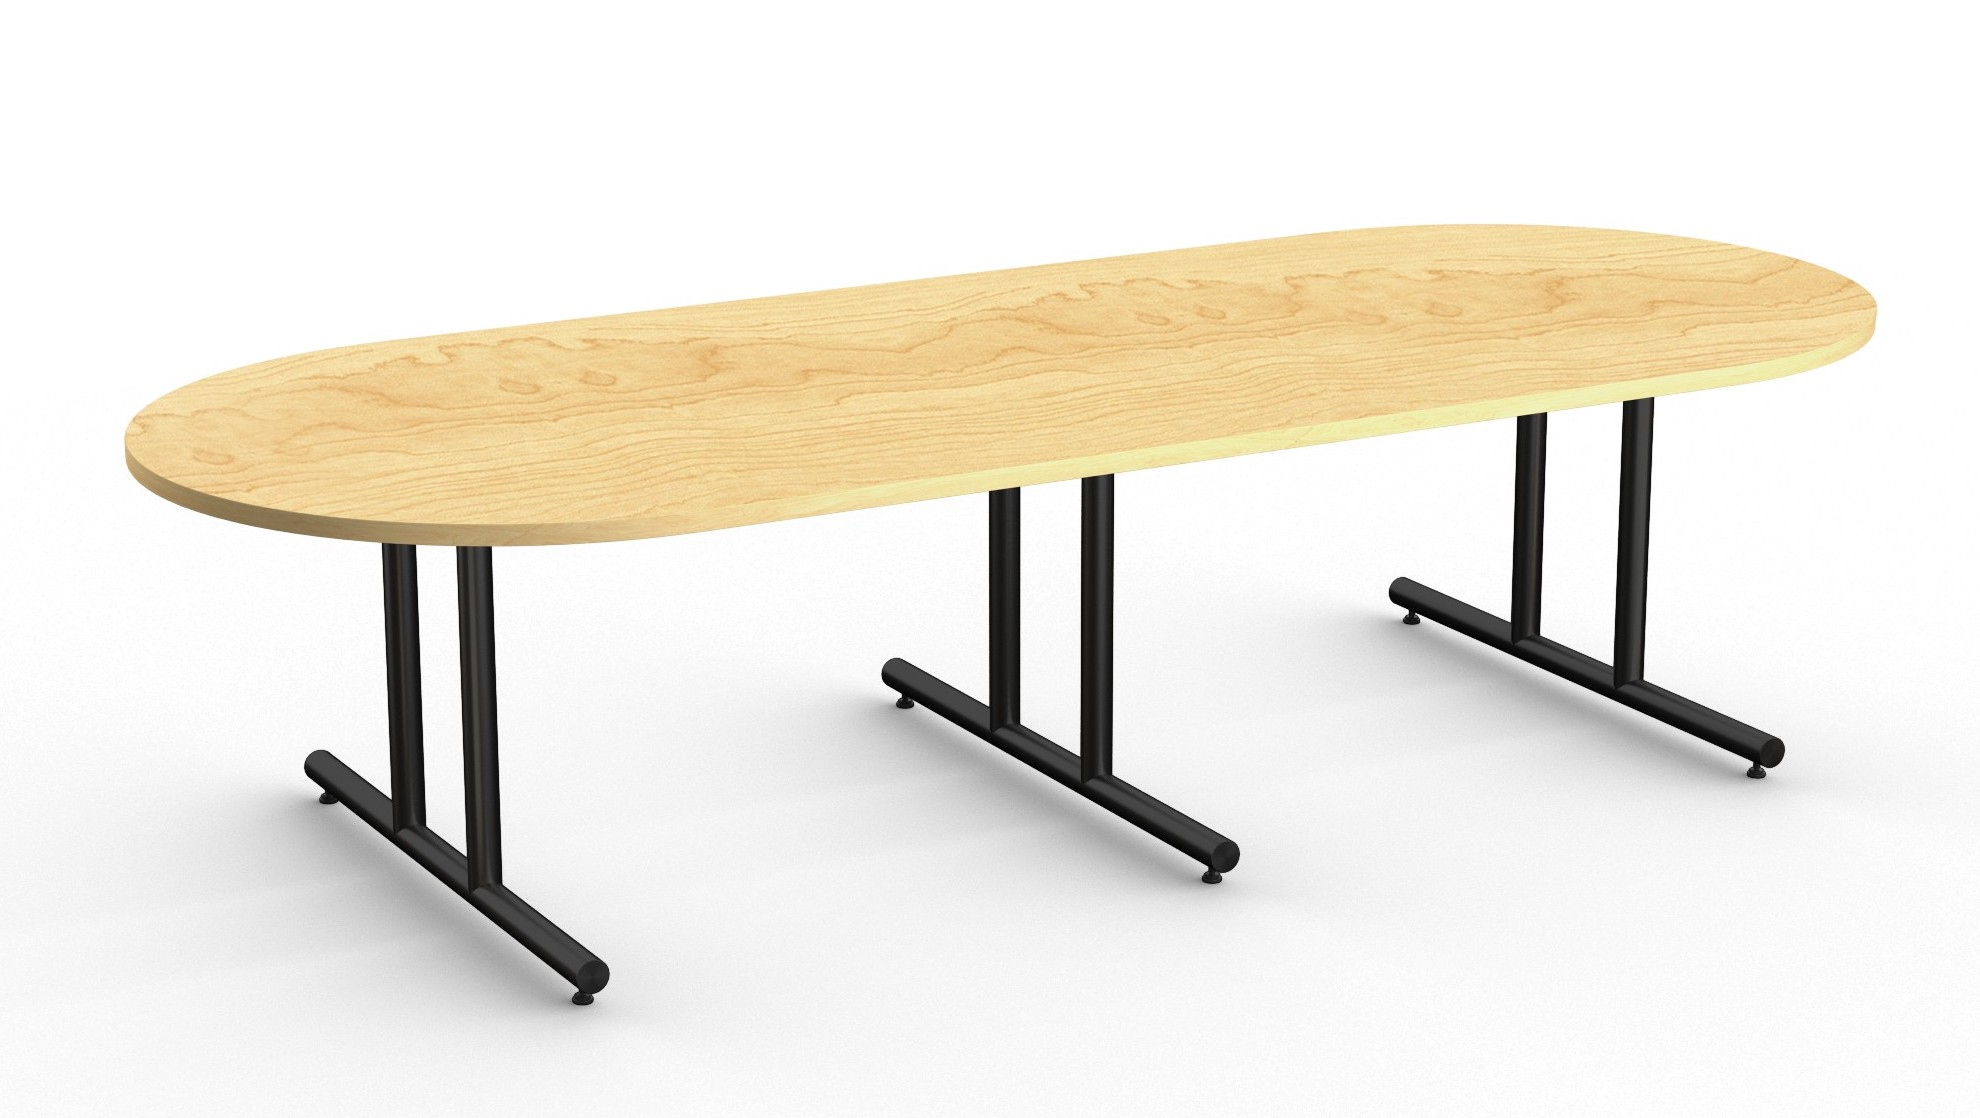 olympus large boardroom table with racetrack surface